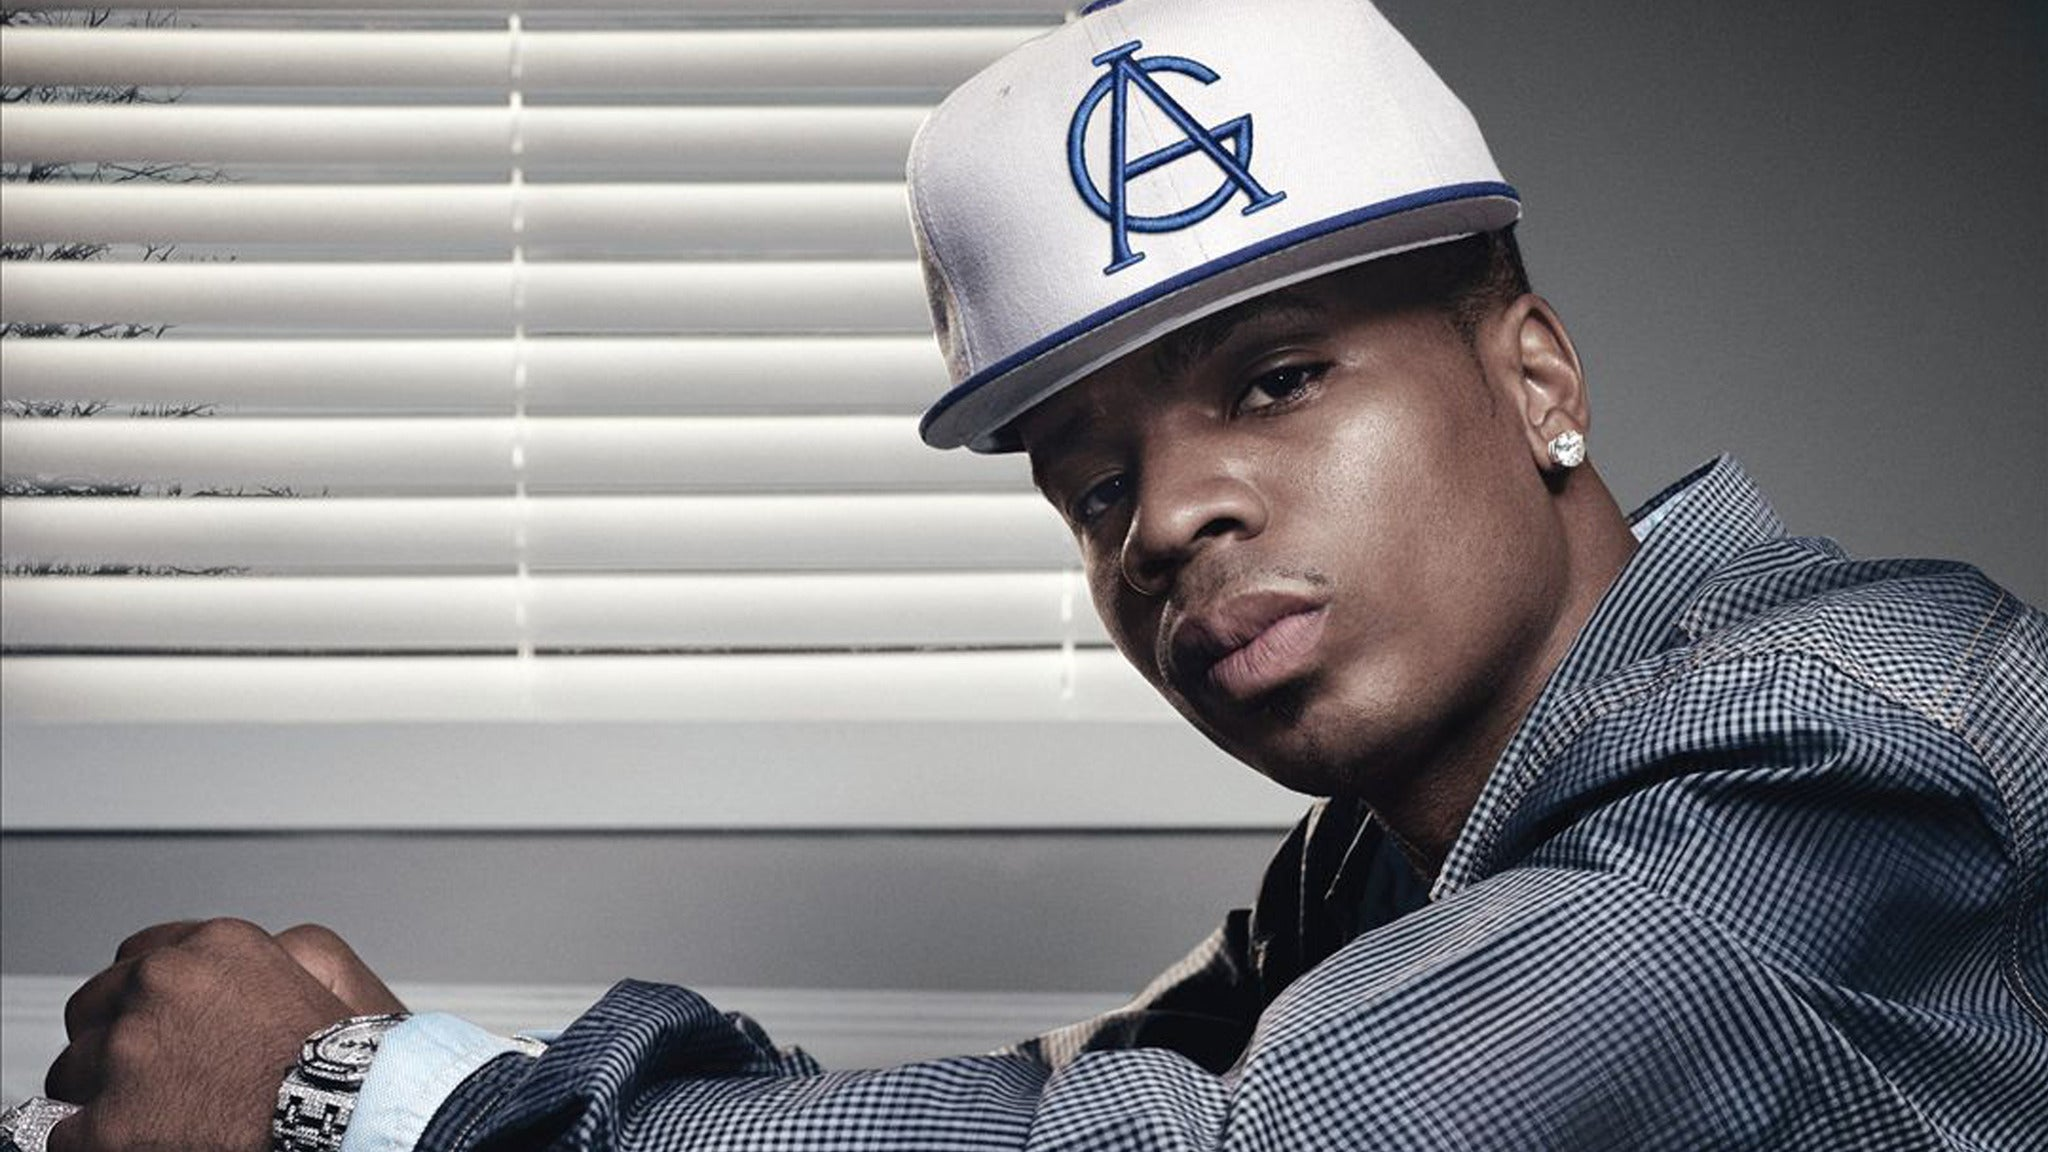 Plies at Joe's on Weed Street